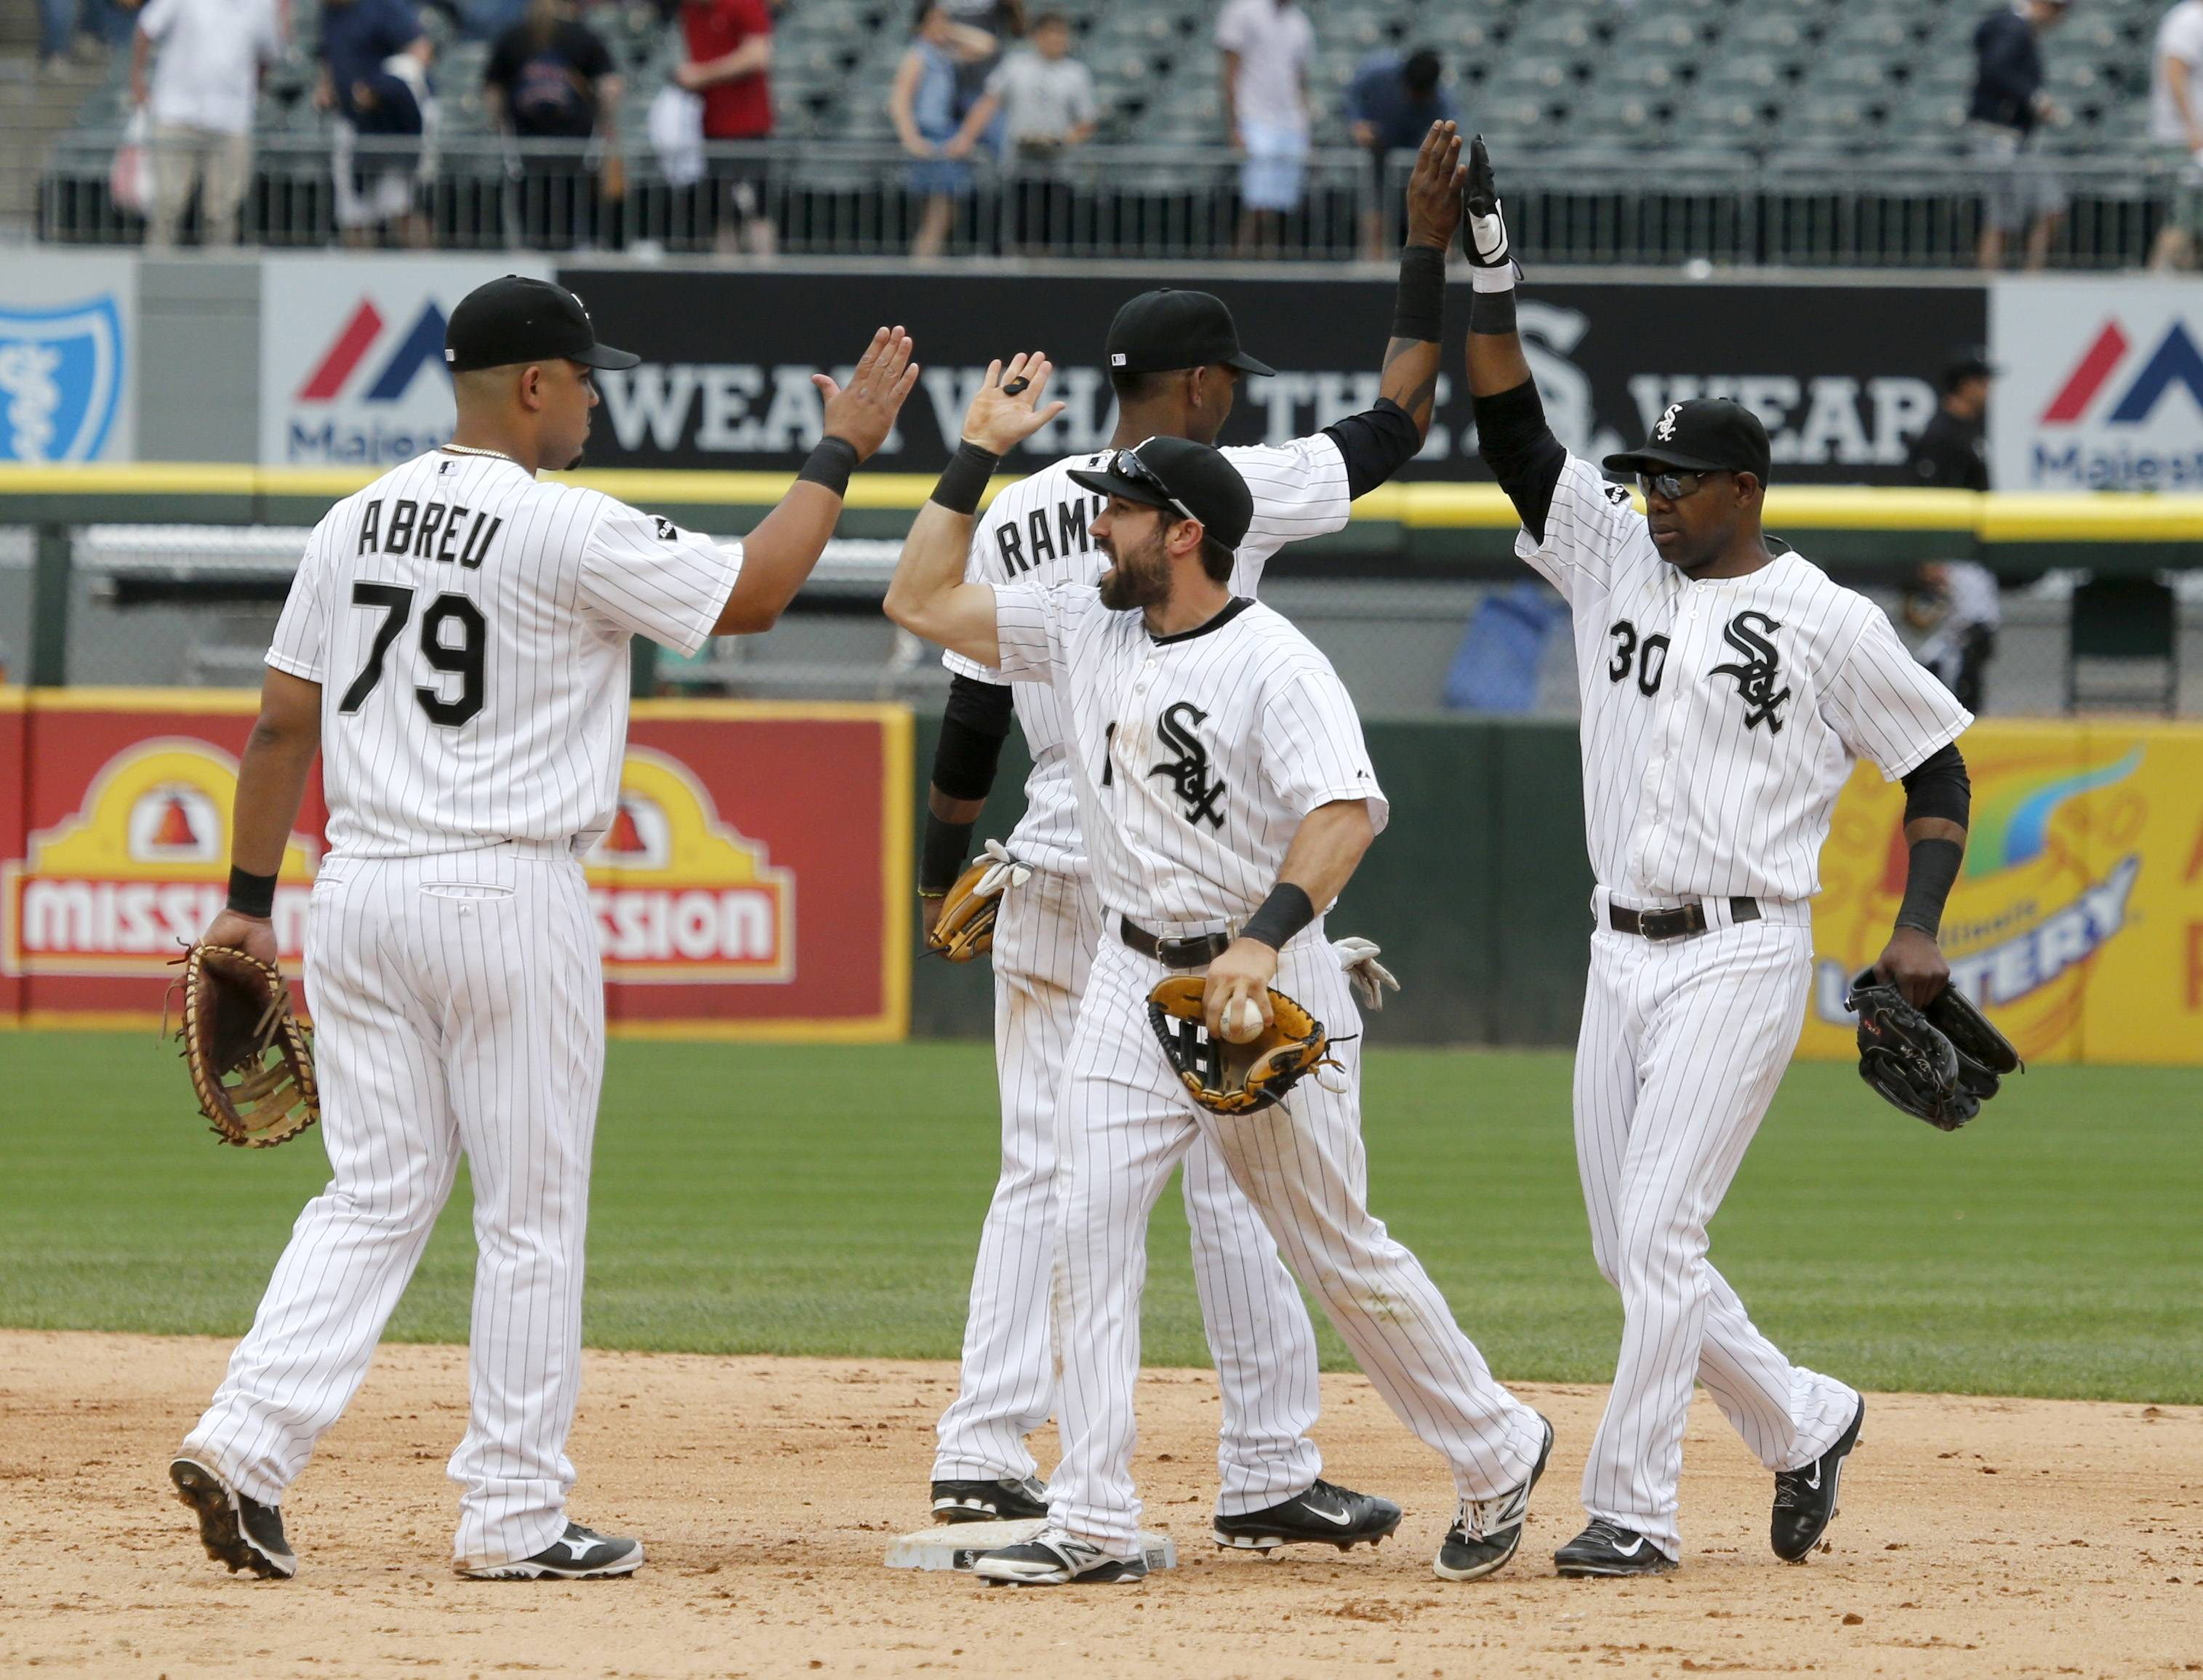 White Sox players, from left, Jose Abreu, Alexei Ramirez, Adam Eaton and Alejandro De Aza celebrate their 7-6 win over the San Francisco Giants on Wednesday at U.S. Cellular Field.